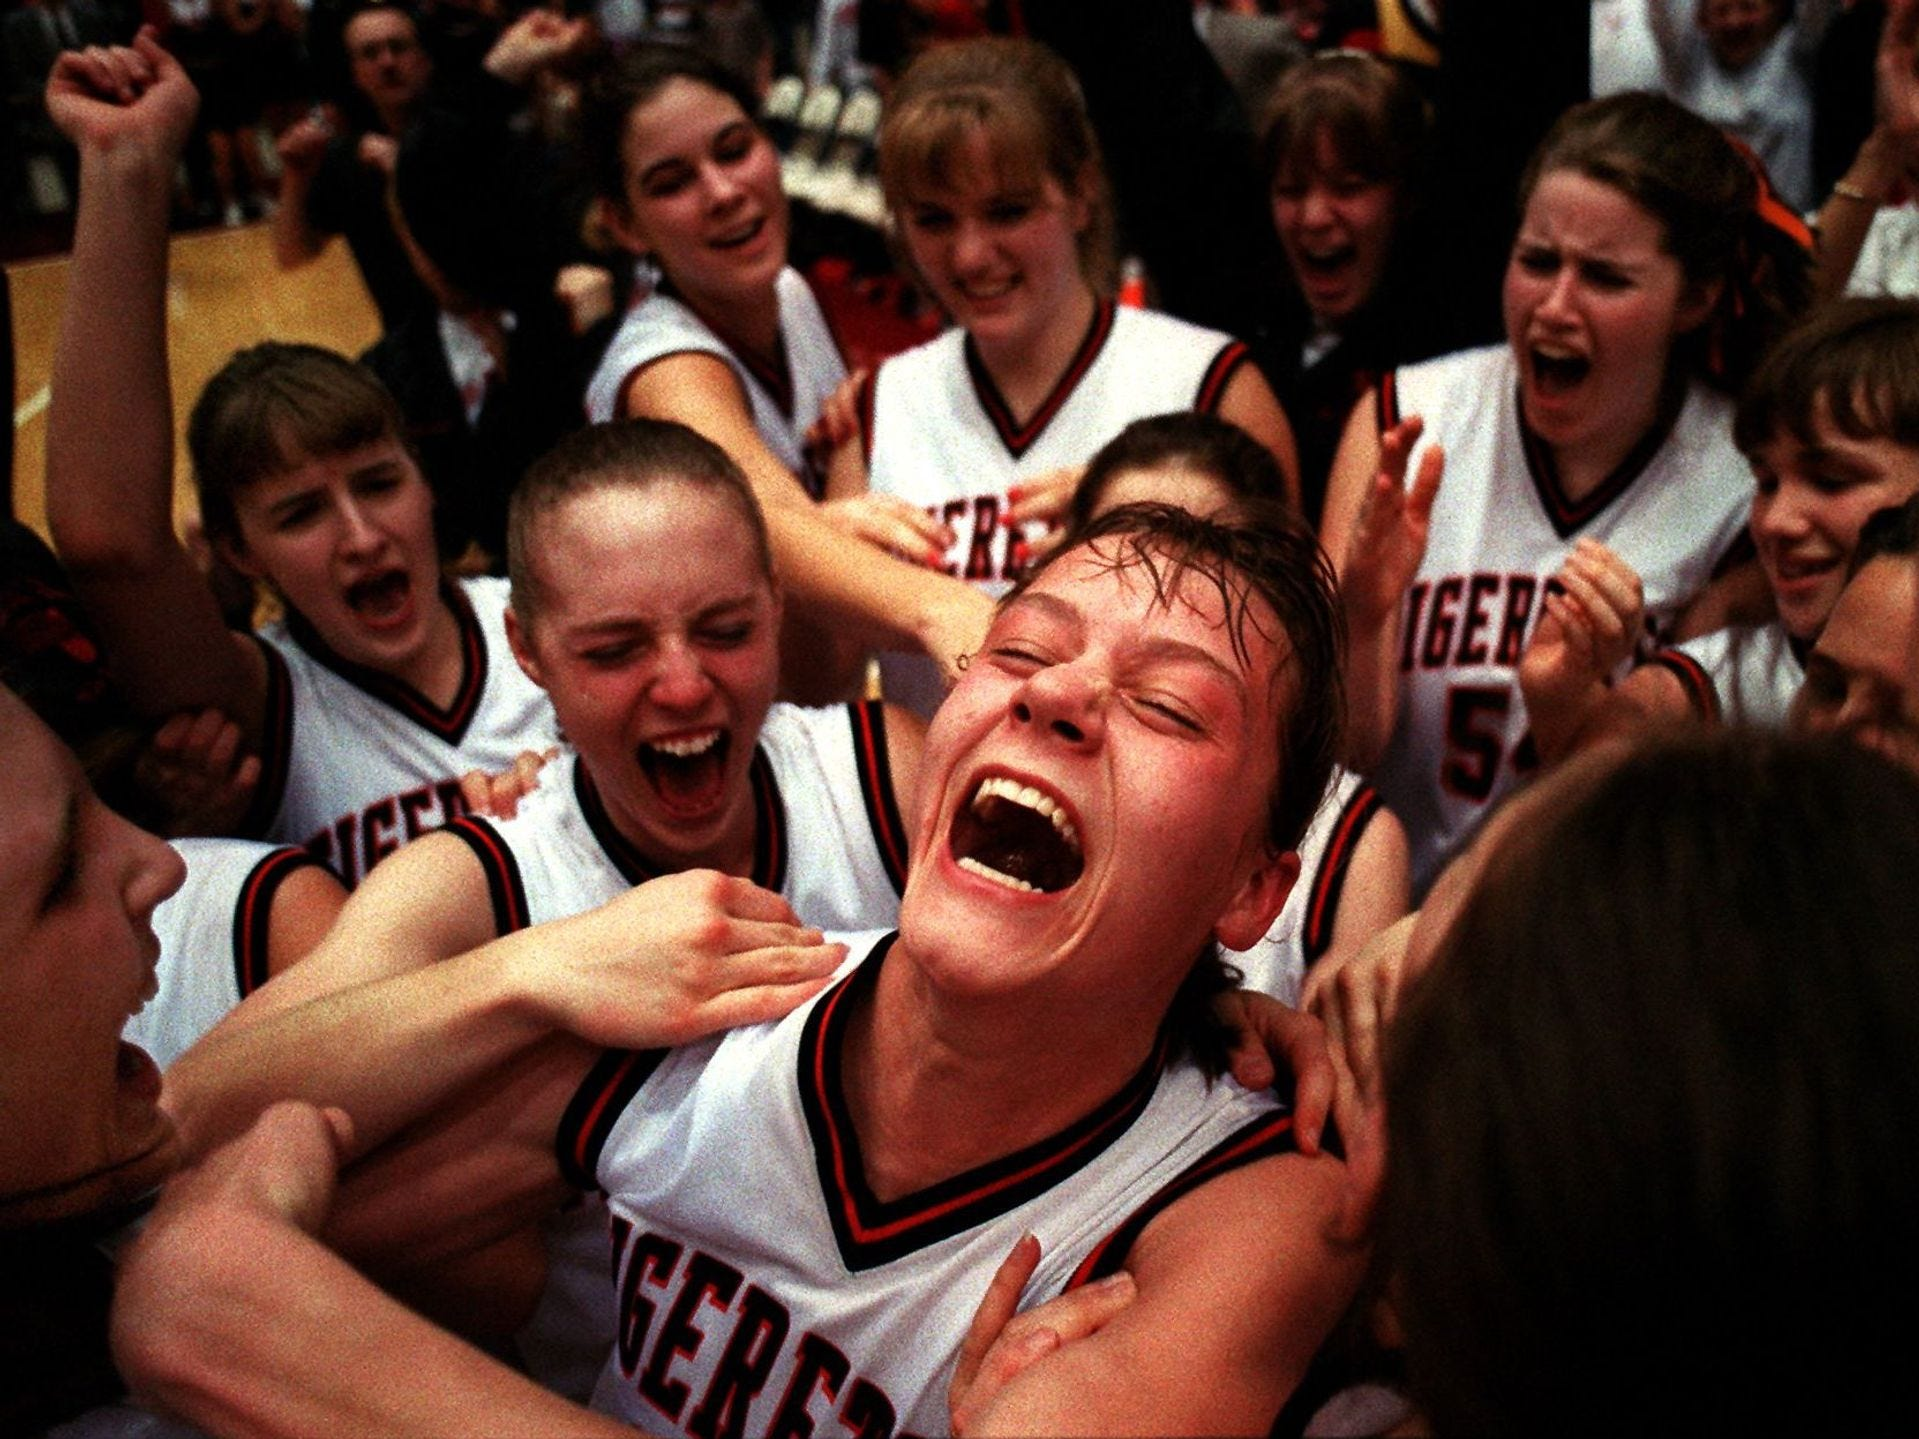 1996: Sara Stribe (center looking up) celebrates with Carroll teammates after she was named captain of the all-tournament team and after Carroll defeated Vinton-Shellsburg for Class 3A championship at the state girl's basketball tournament. Register file photo